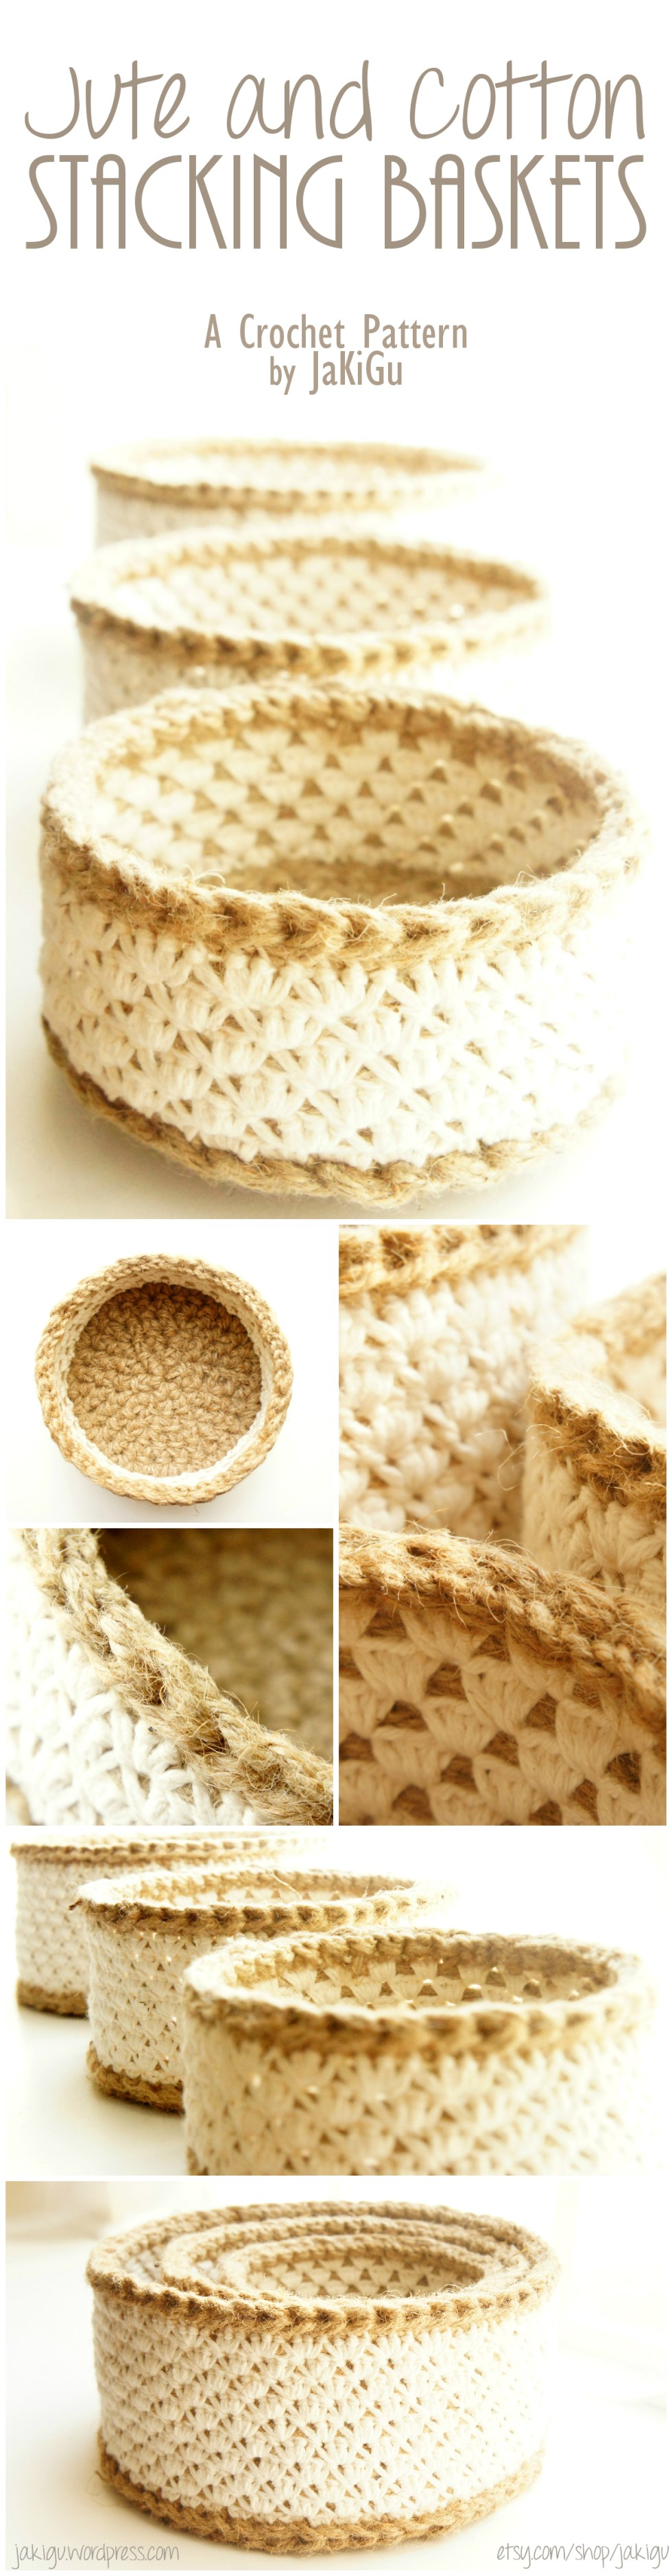 Jute and cotton stacking baskets - and original crochet pattern by jakigu.com